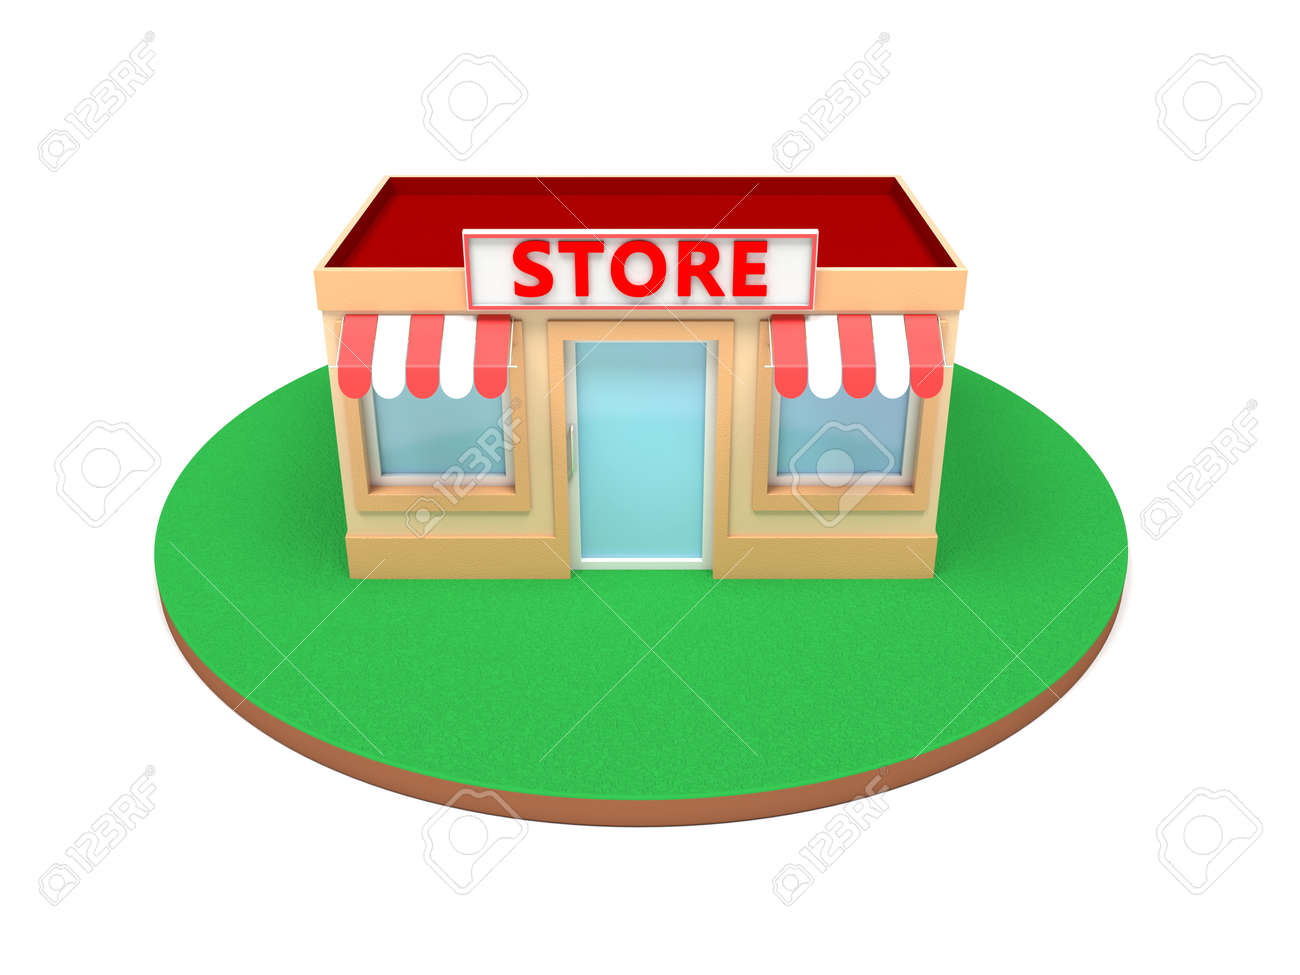 Store building. Colored 3d illustration isolated on white background - 150191160